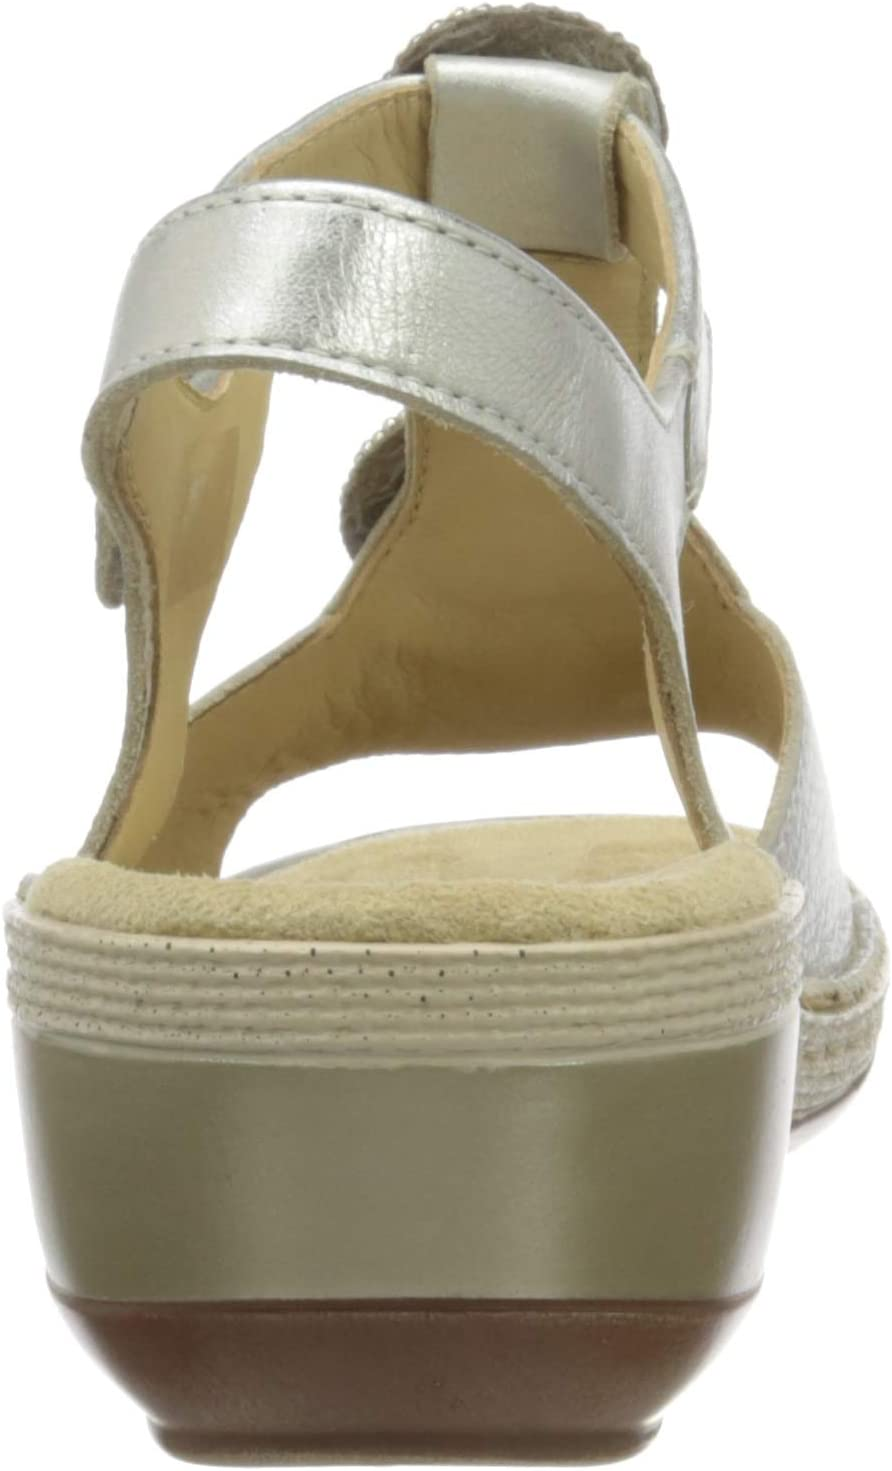 ARA Key West T-spangen sandalen voor dames Wit witgoud 14